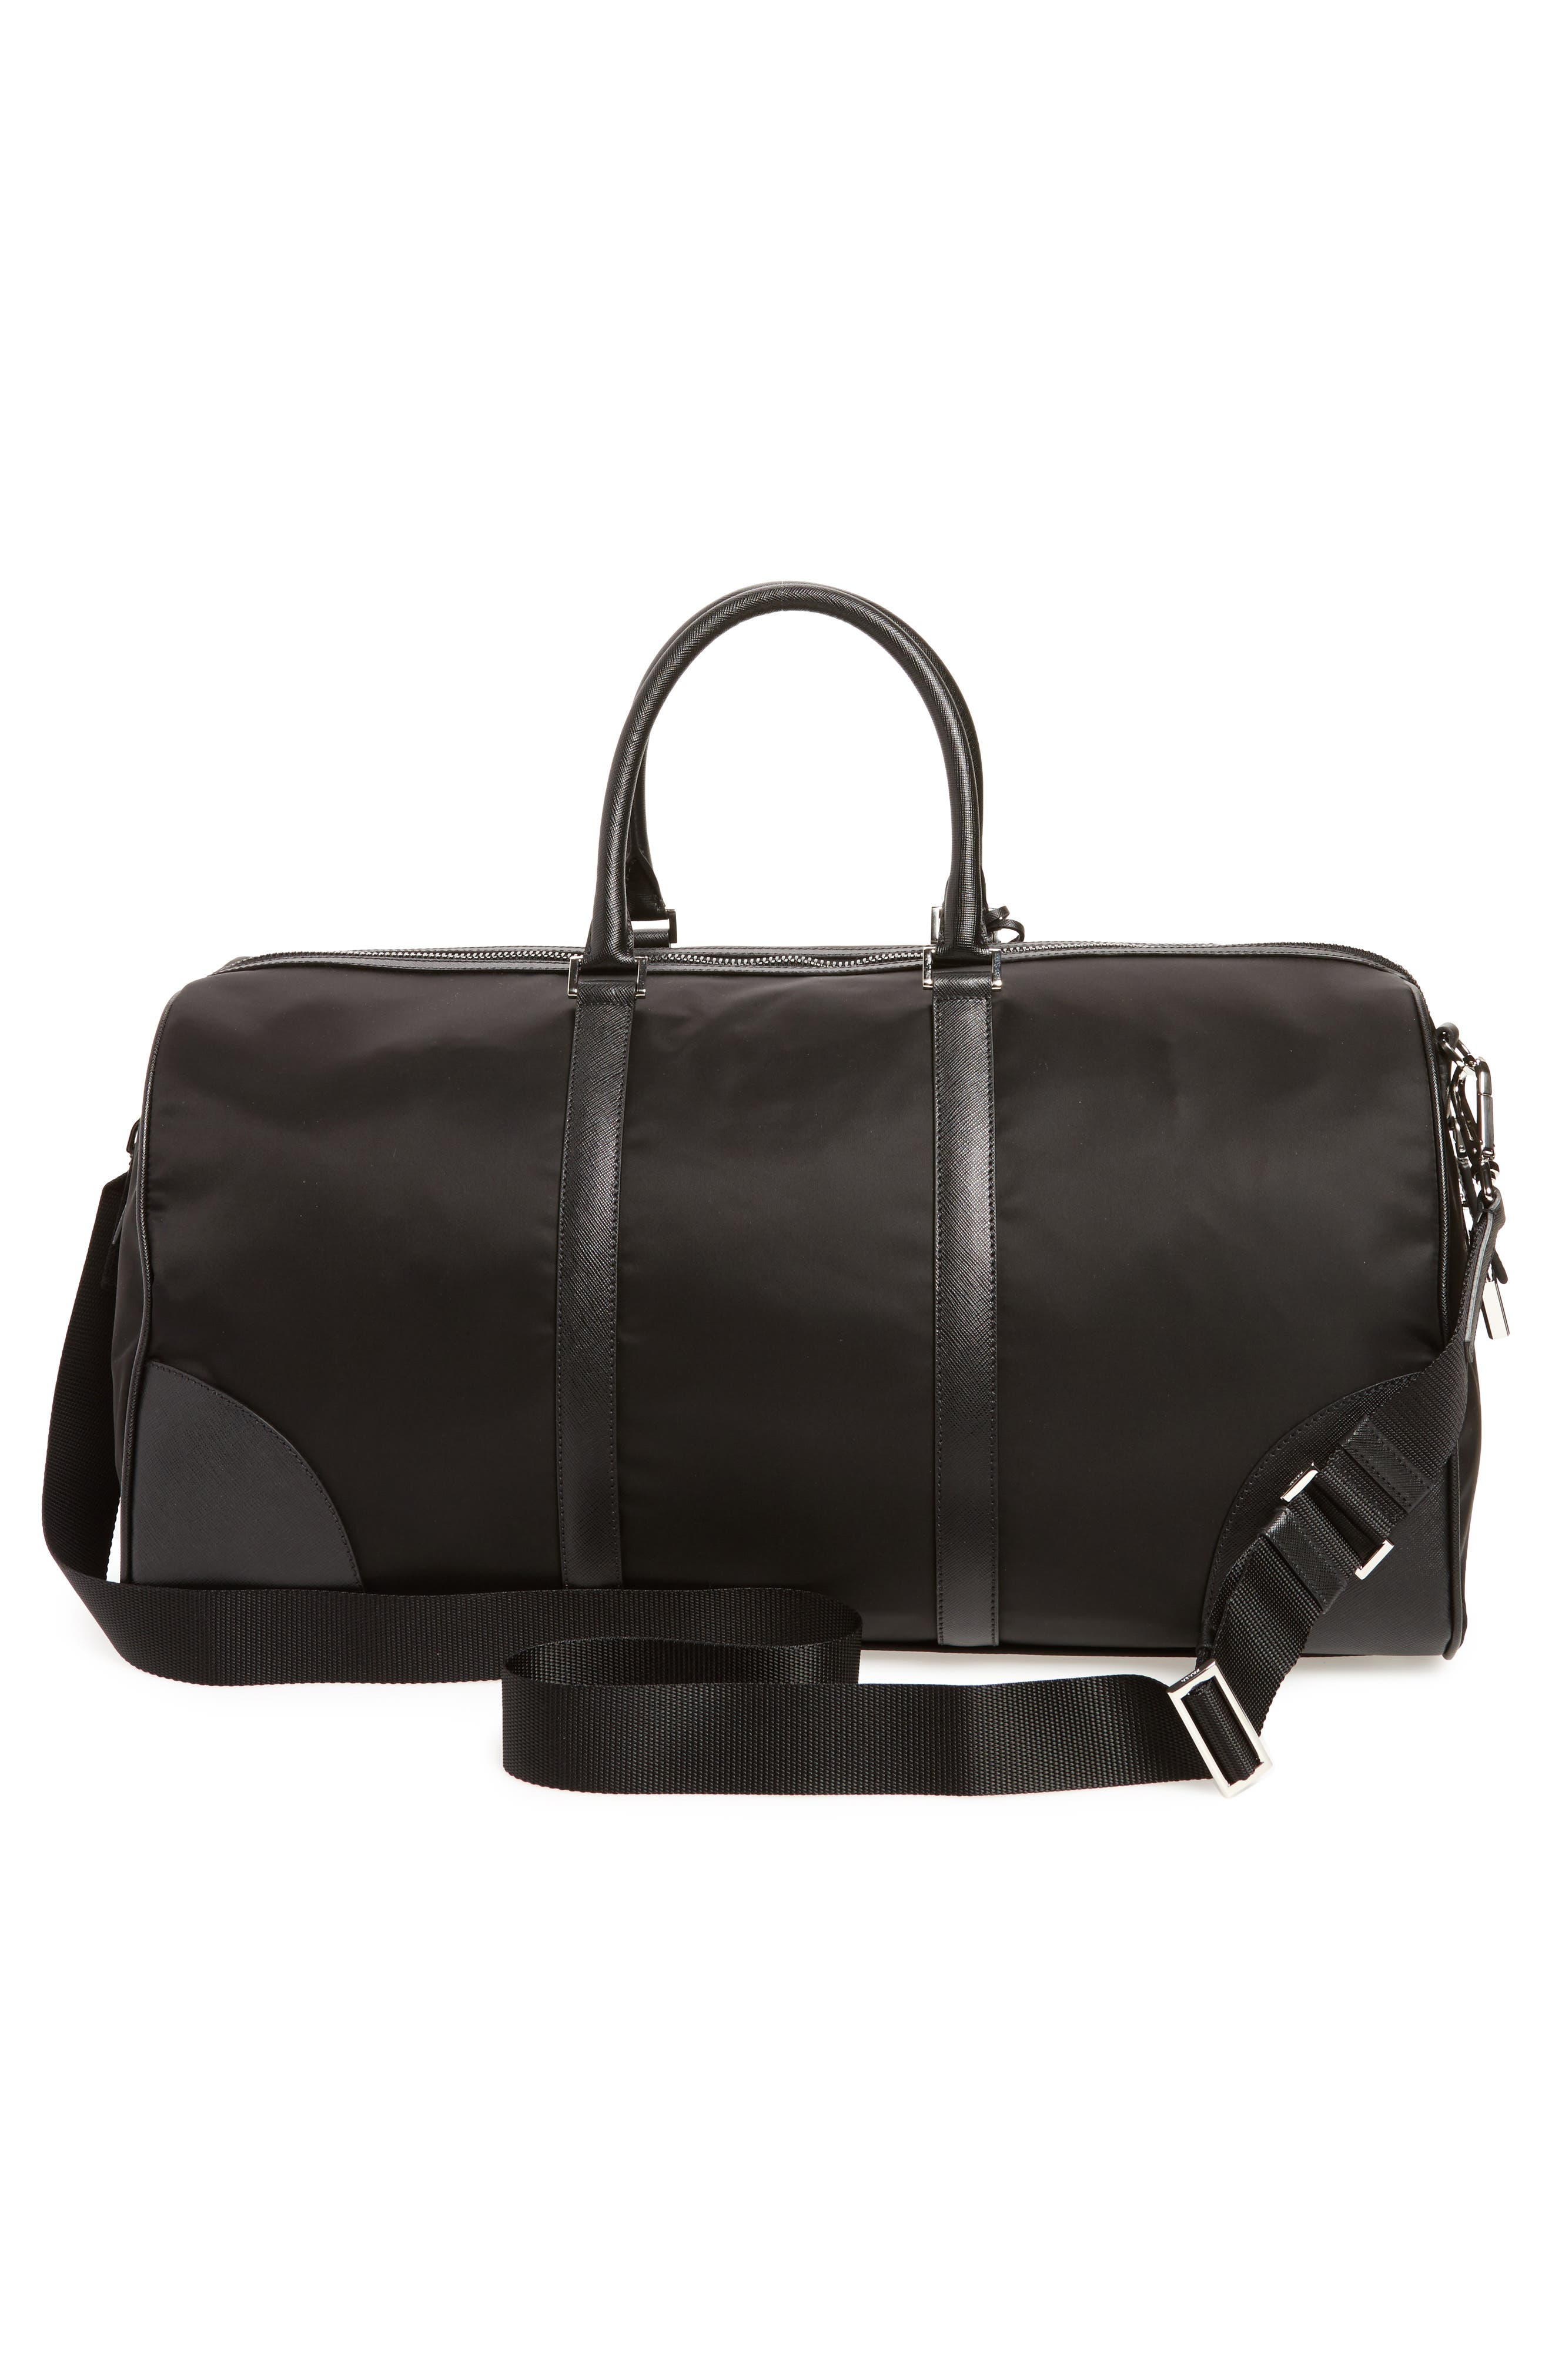 Nylon & Saffiano Leather Bowling Bag,                             Alternate thumbnail 3, color,                             Nero